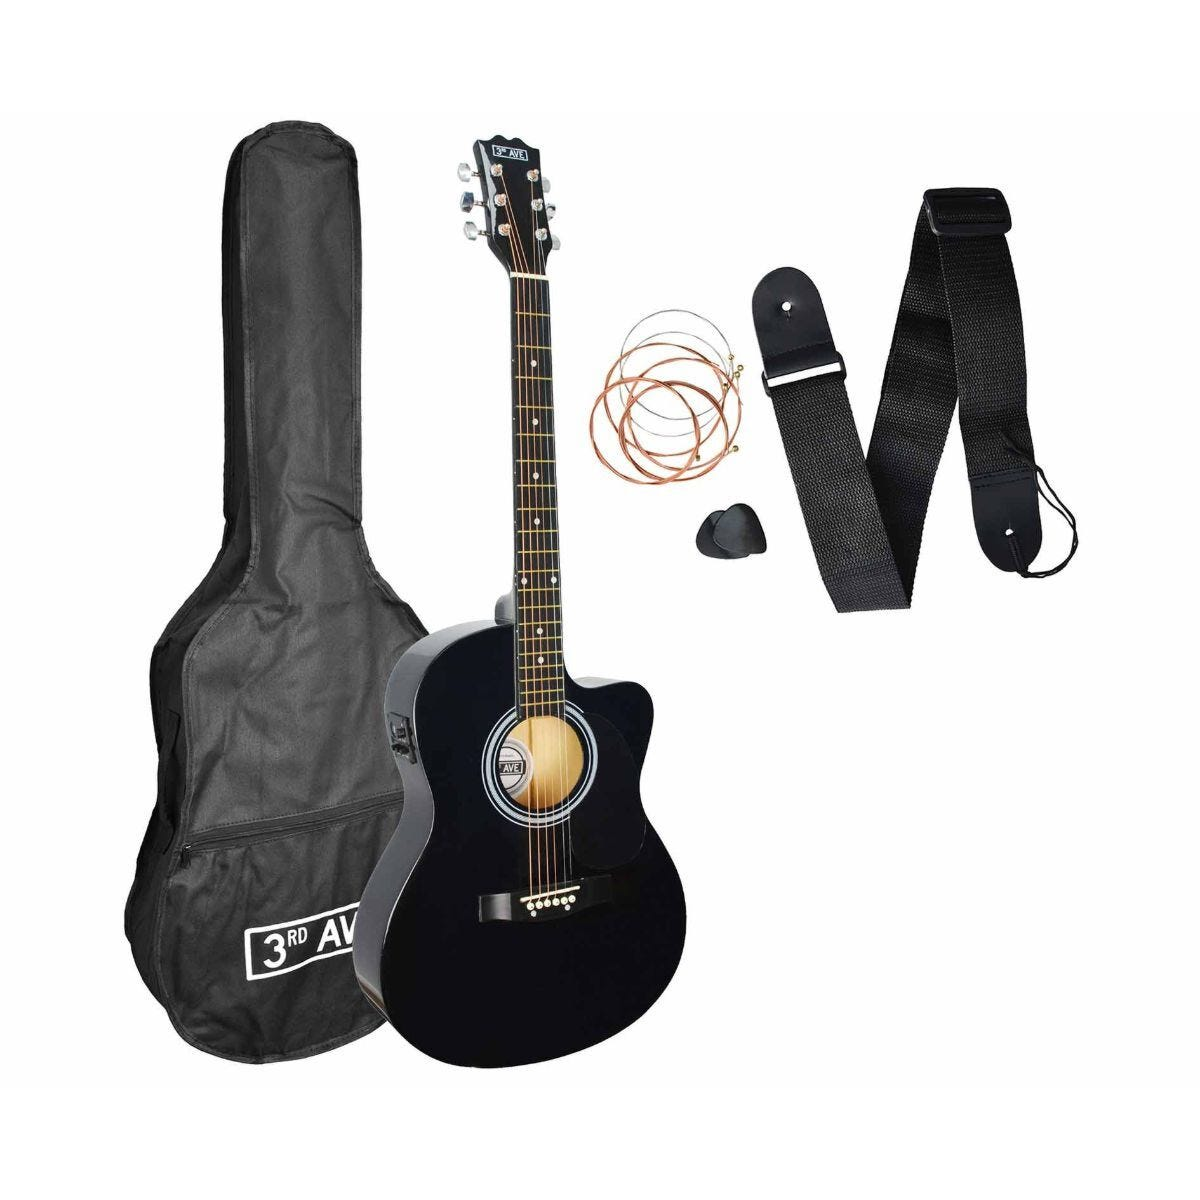 3rd Avenue Cutaway Electro Acoustic Guitar Kit Black